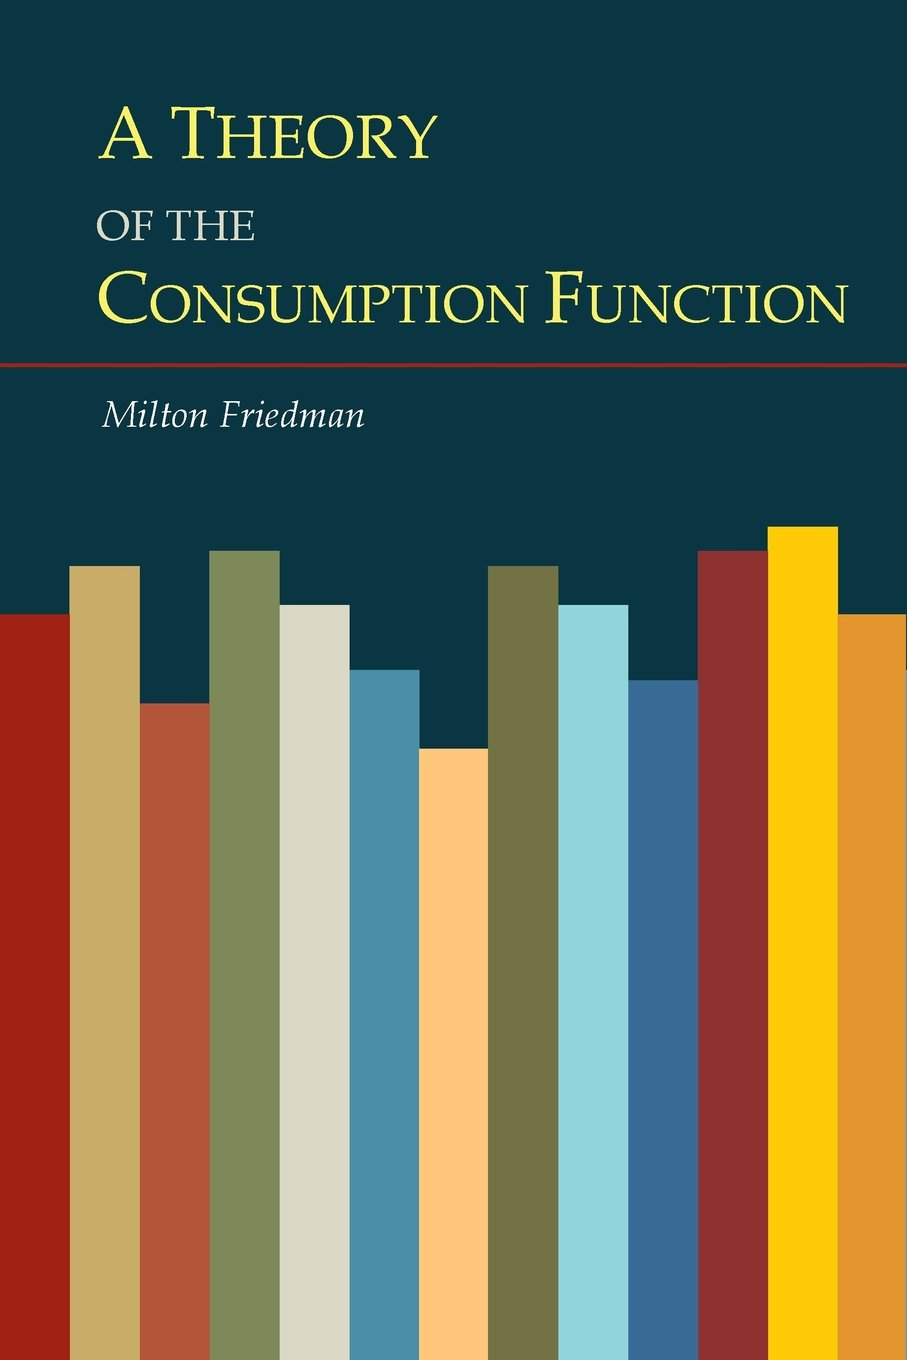 a theory of the consumption function milton friedman a theory of the consumption function milton friedman 9781614278122 com books